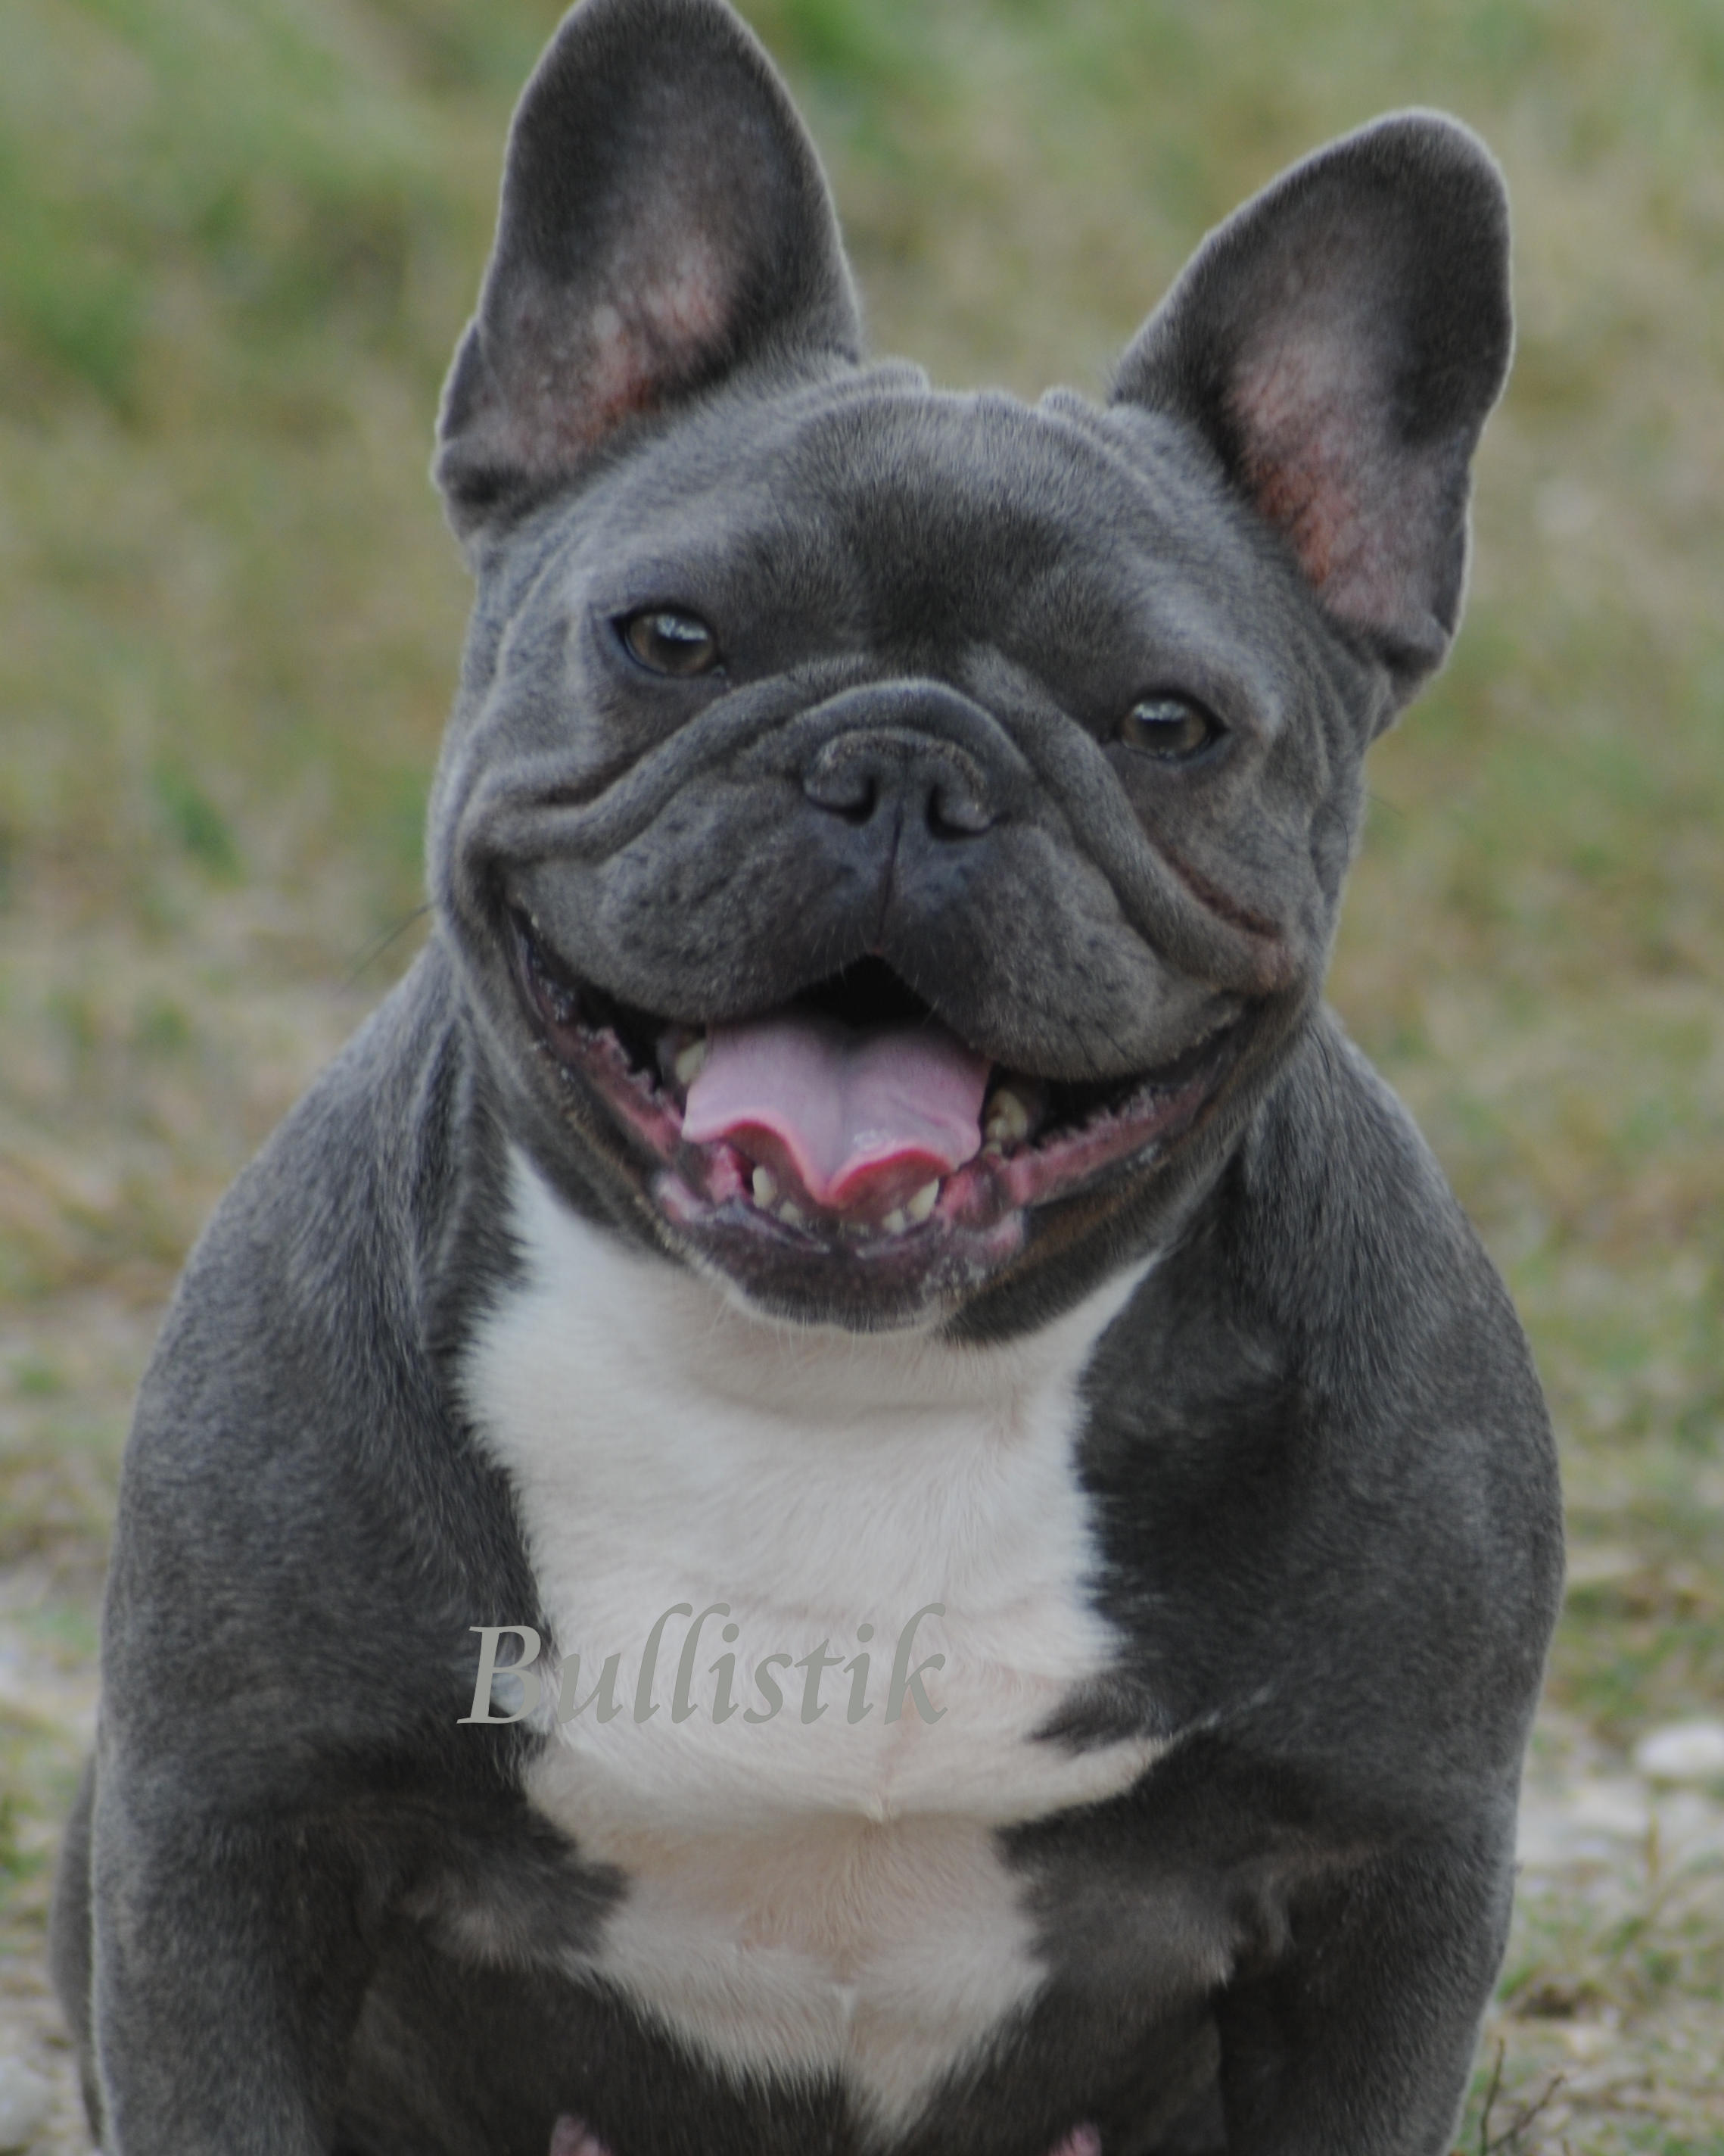 French Bulldogs By Bullistik | Dog Breeds Picture